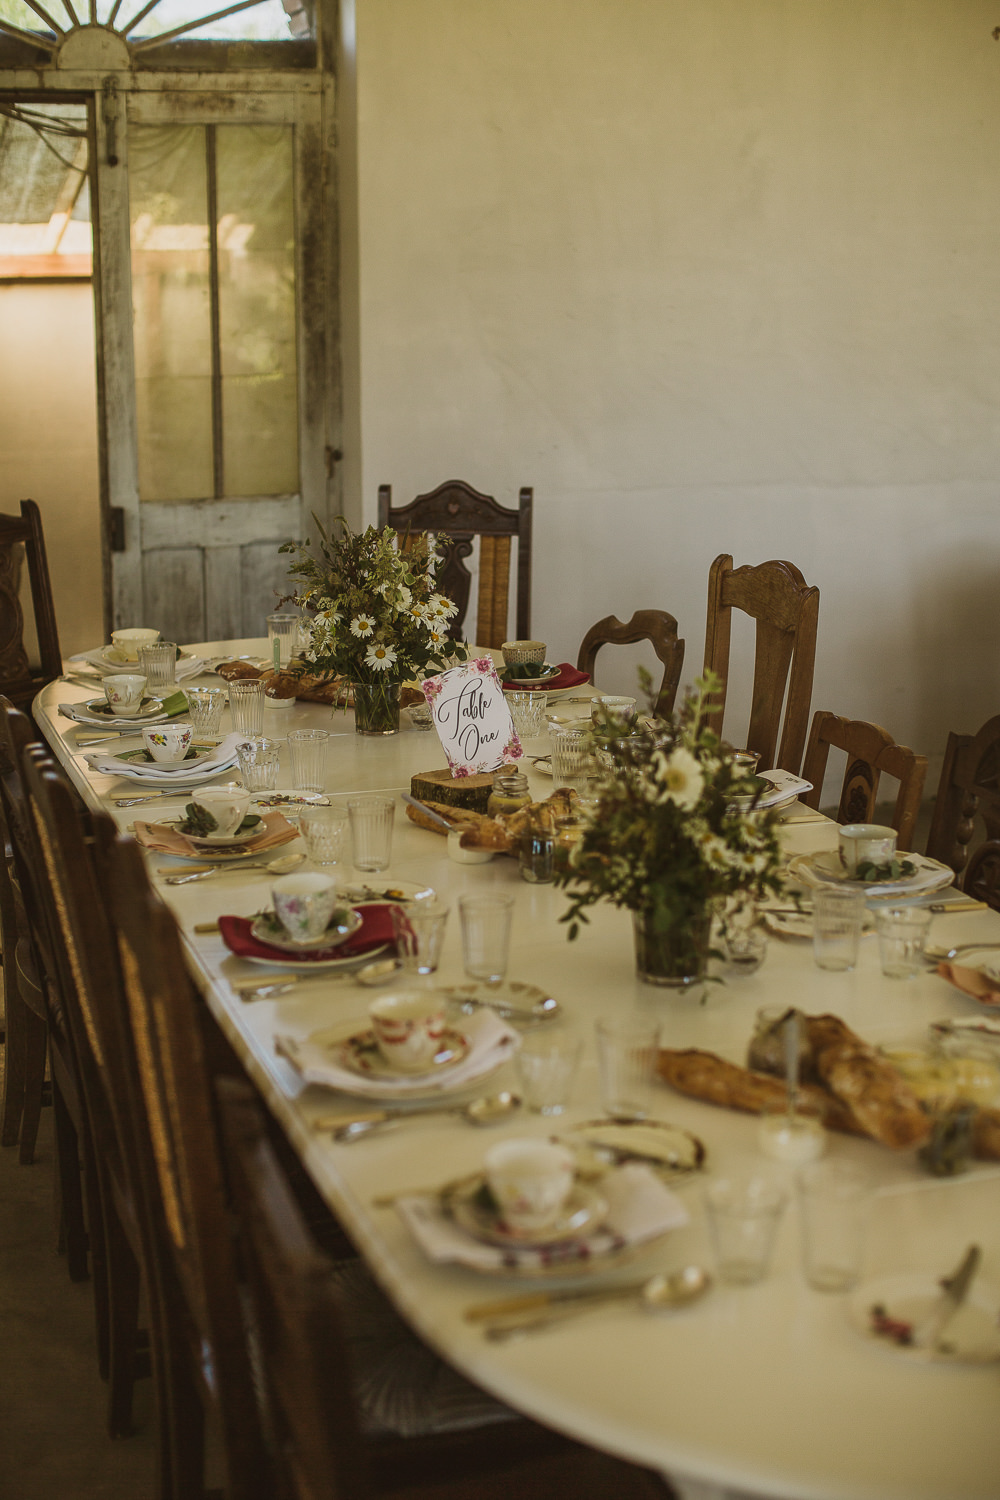 Table Decor Flowers Plates Place Settings Escape To The Chateau Wedding The Springles